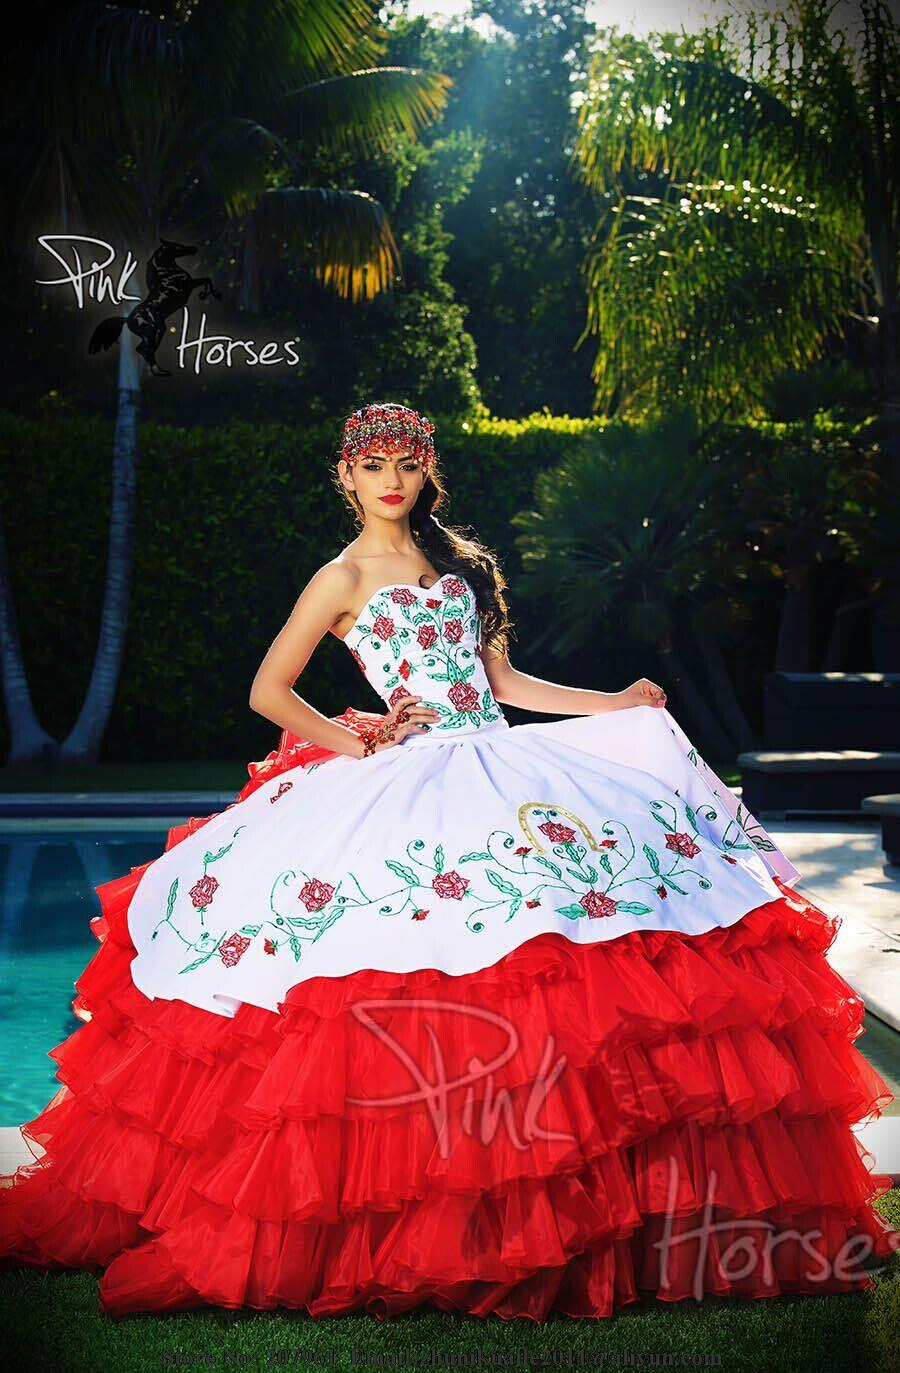 ae341f7f4a8 2016 Red And White Quinceanera Dresses Pageant Girls Formal Gowns dress for  15 years Robe de mariage with Embroidery Sweetheart